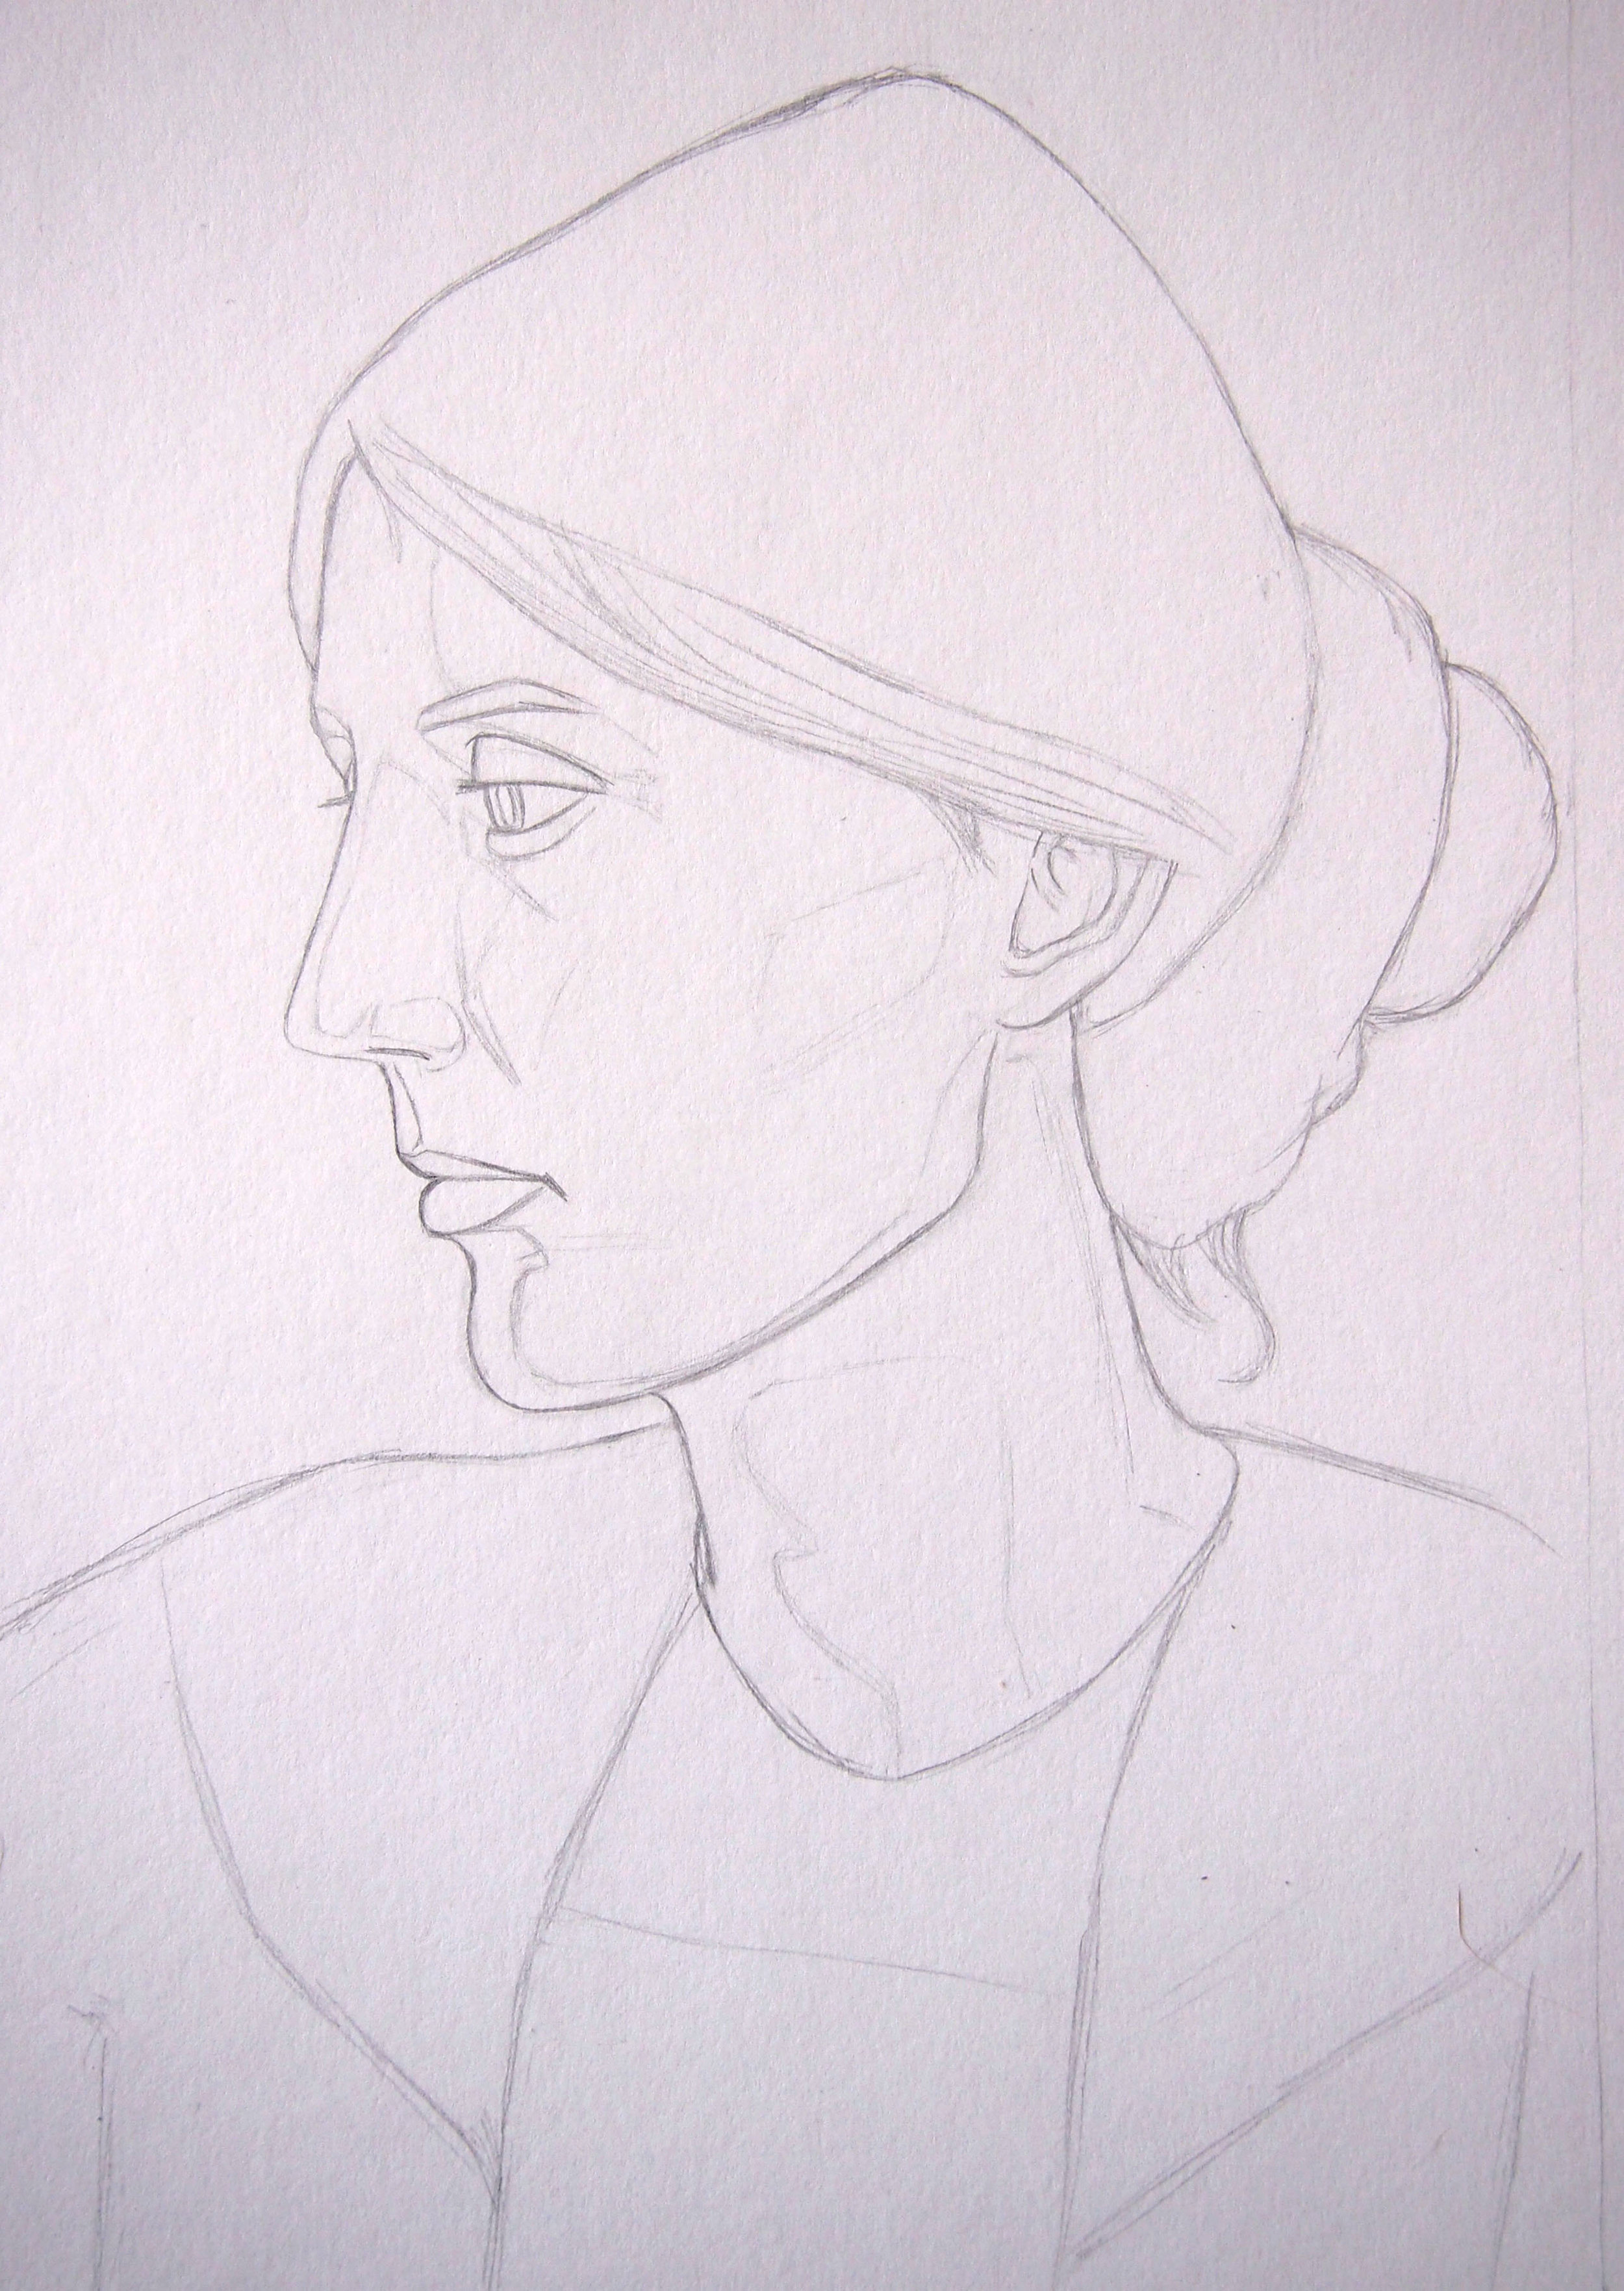 Starting anew on Virginia Woolf's portrait